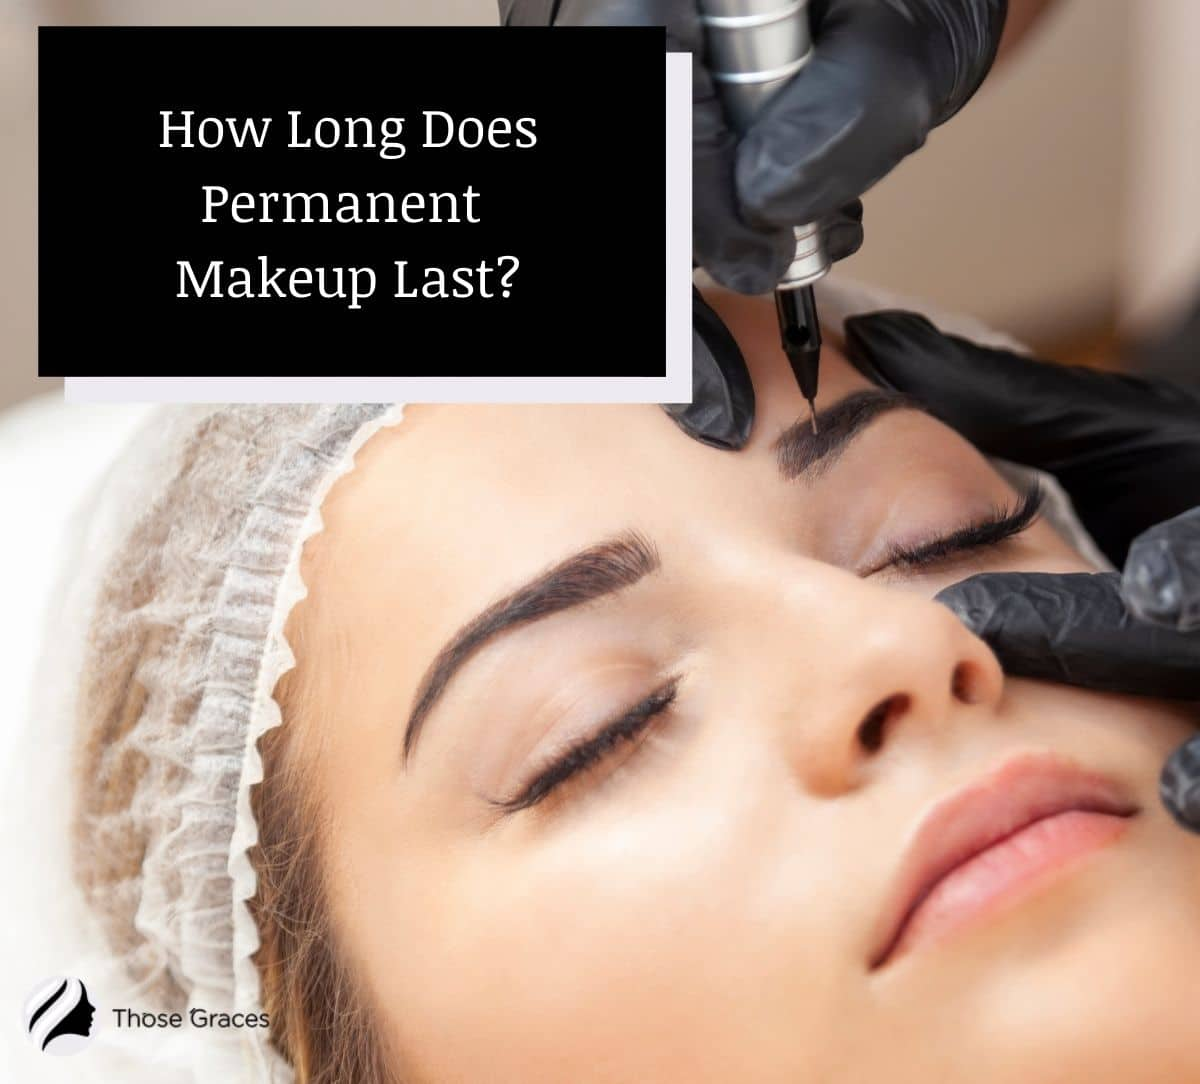 a lady getting a permanent tattoo eyebrows but how long does permanent makeup last?